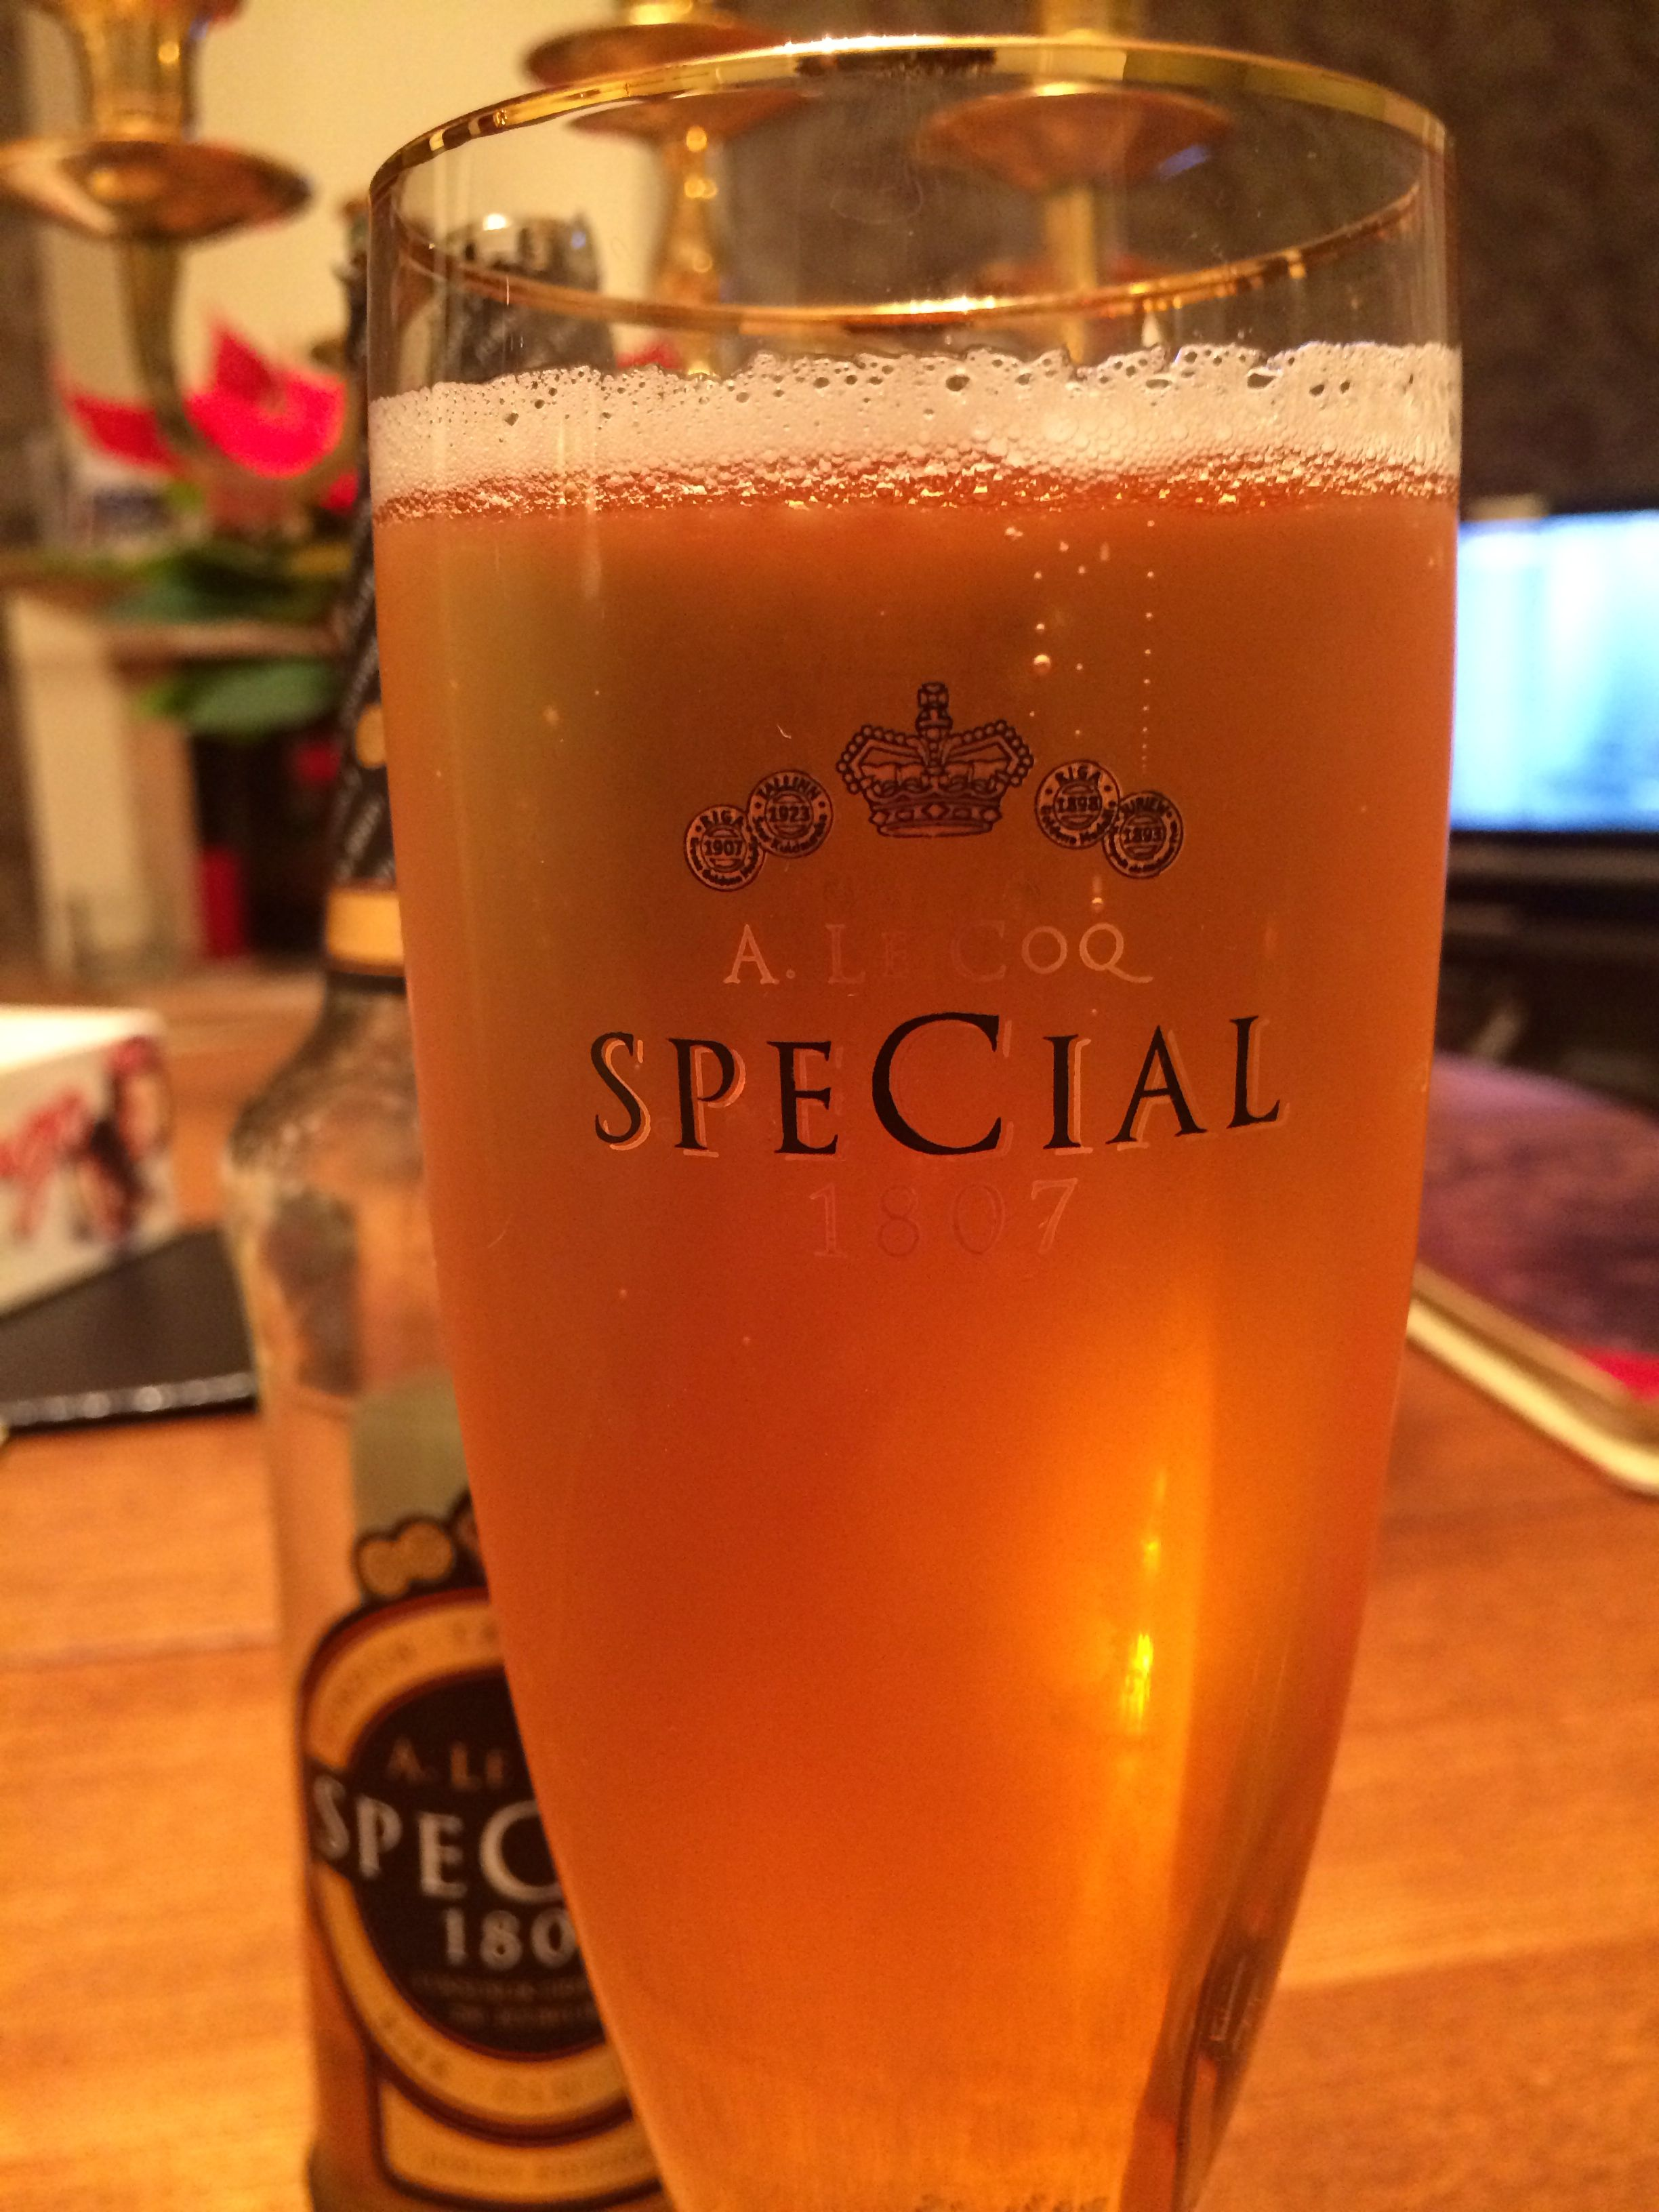 A Le Coq Special Estonia S Finest Quality Jubilee Beer For The 200th Birthday Of The Brewery